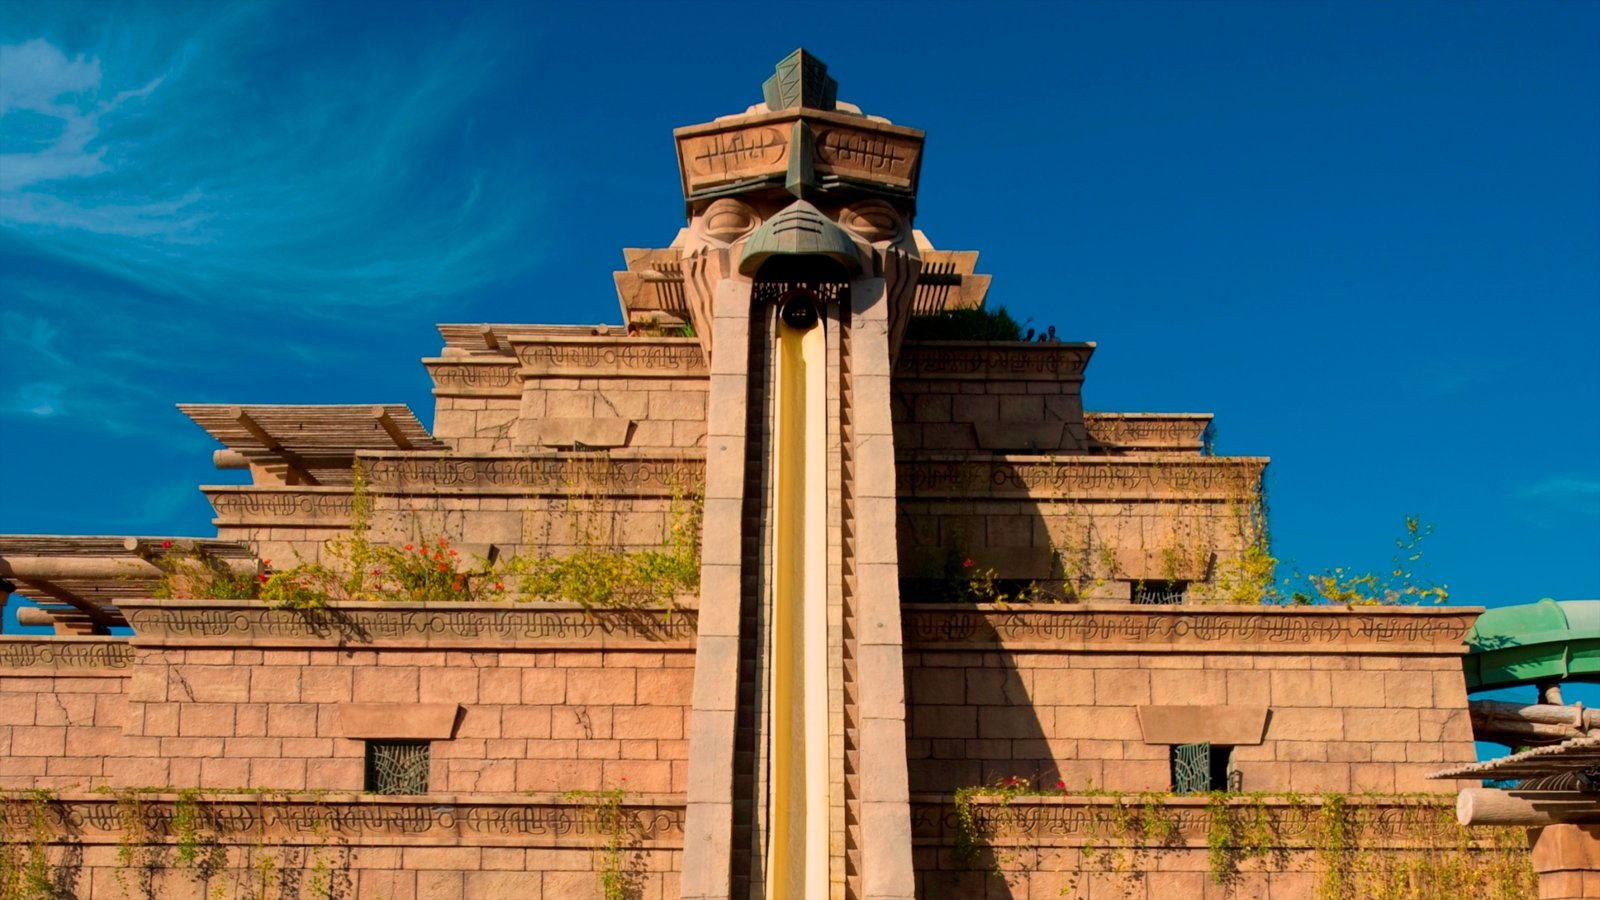 Aquaventure showing a waterpark and rides